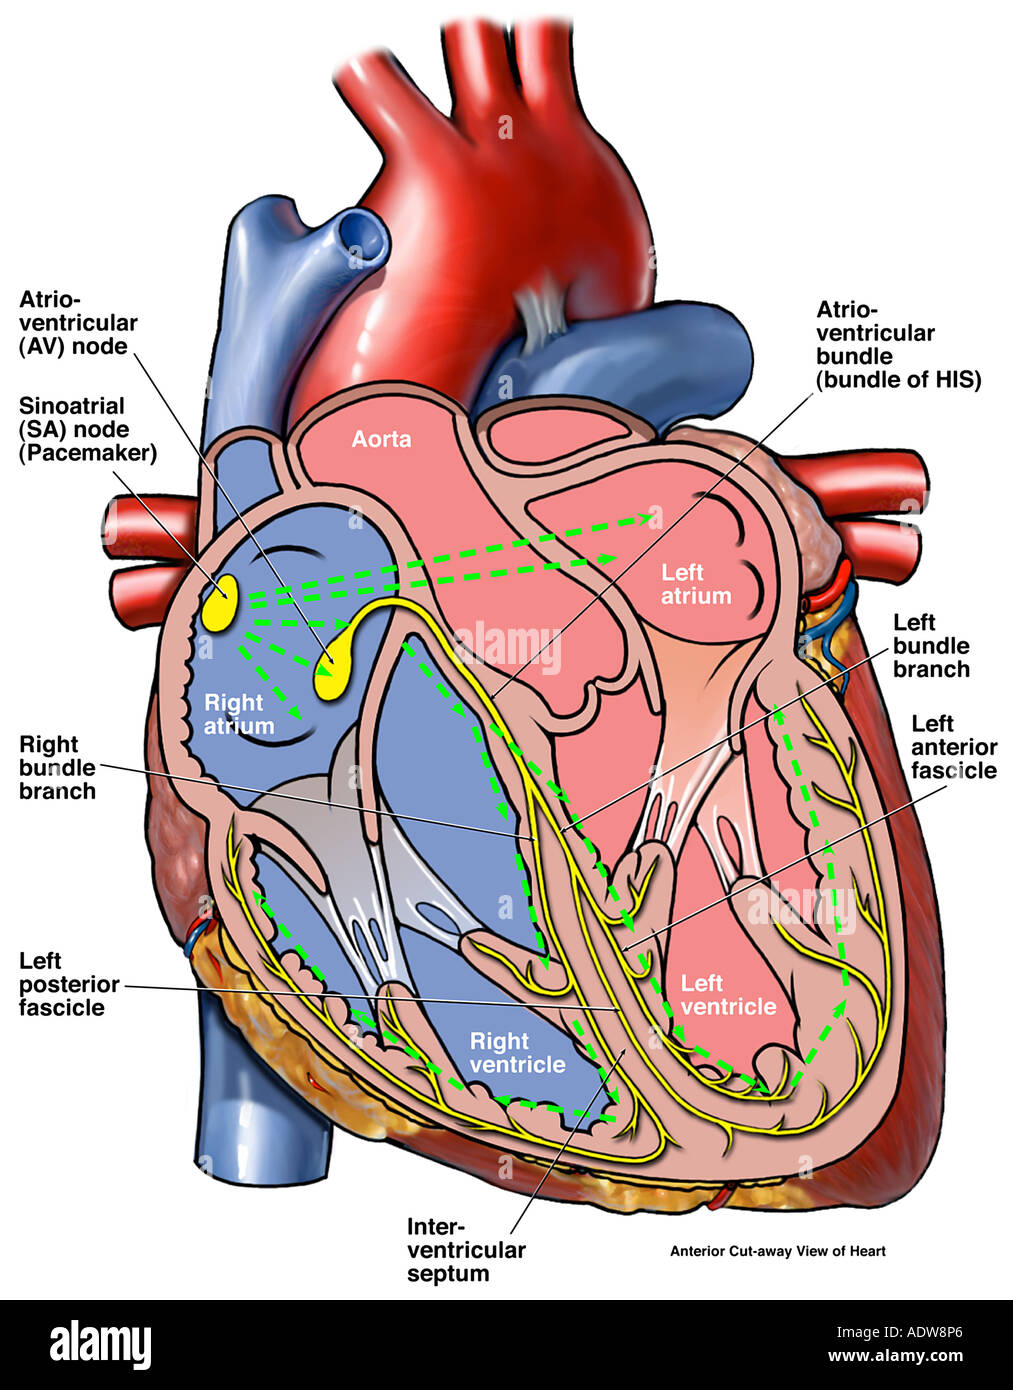 Cardiac Conduction System Of The Heart Stock Photo 7712613 Alamy